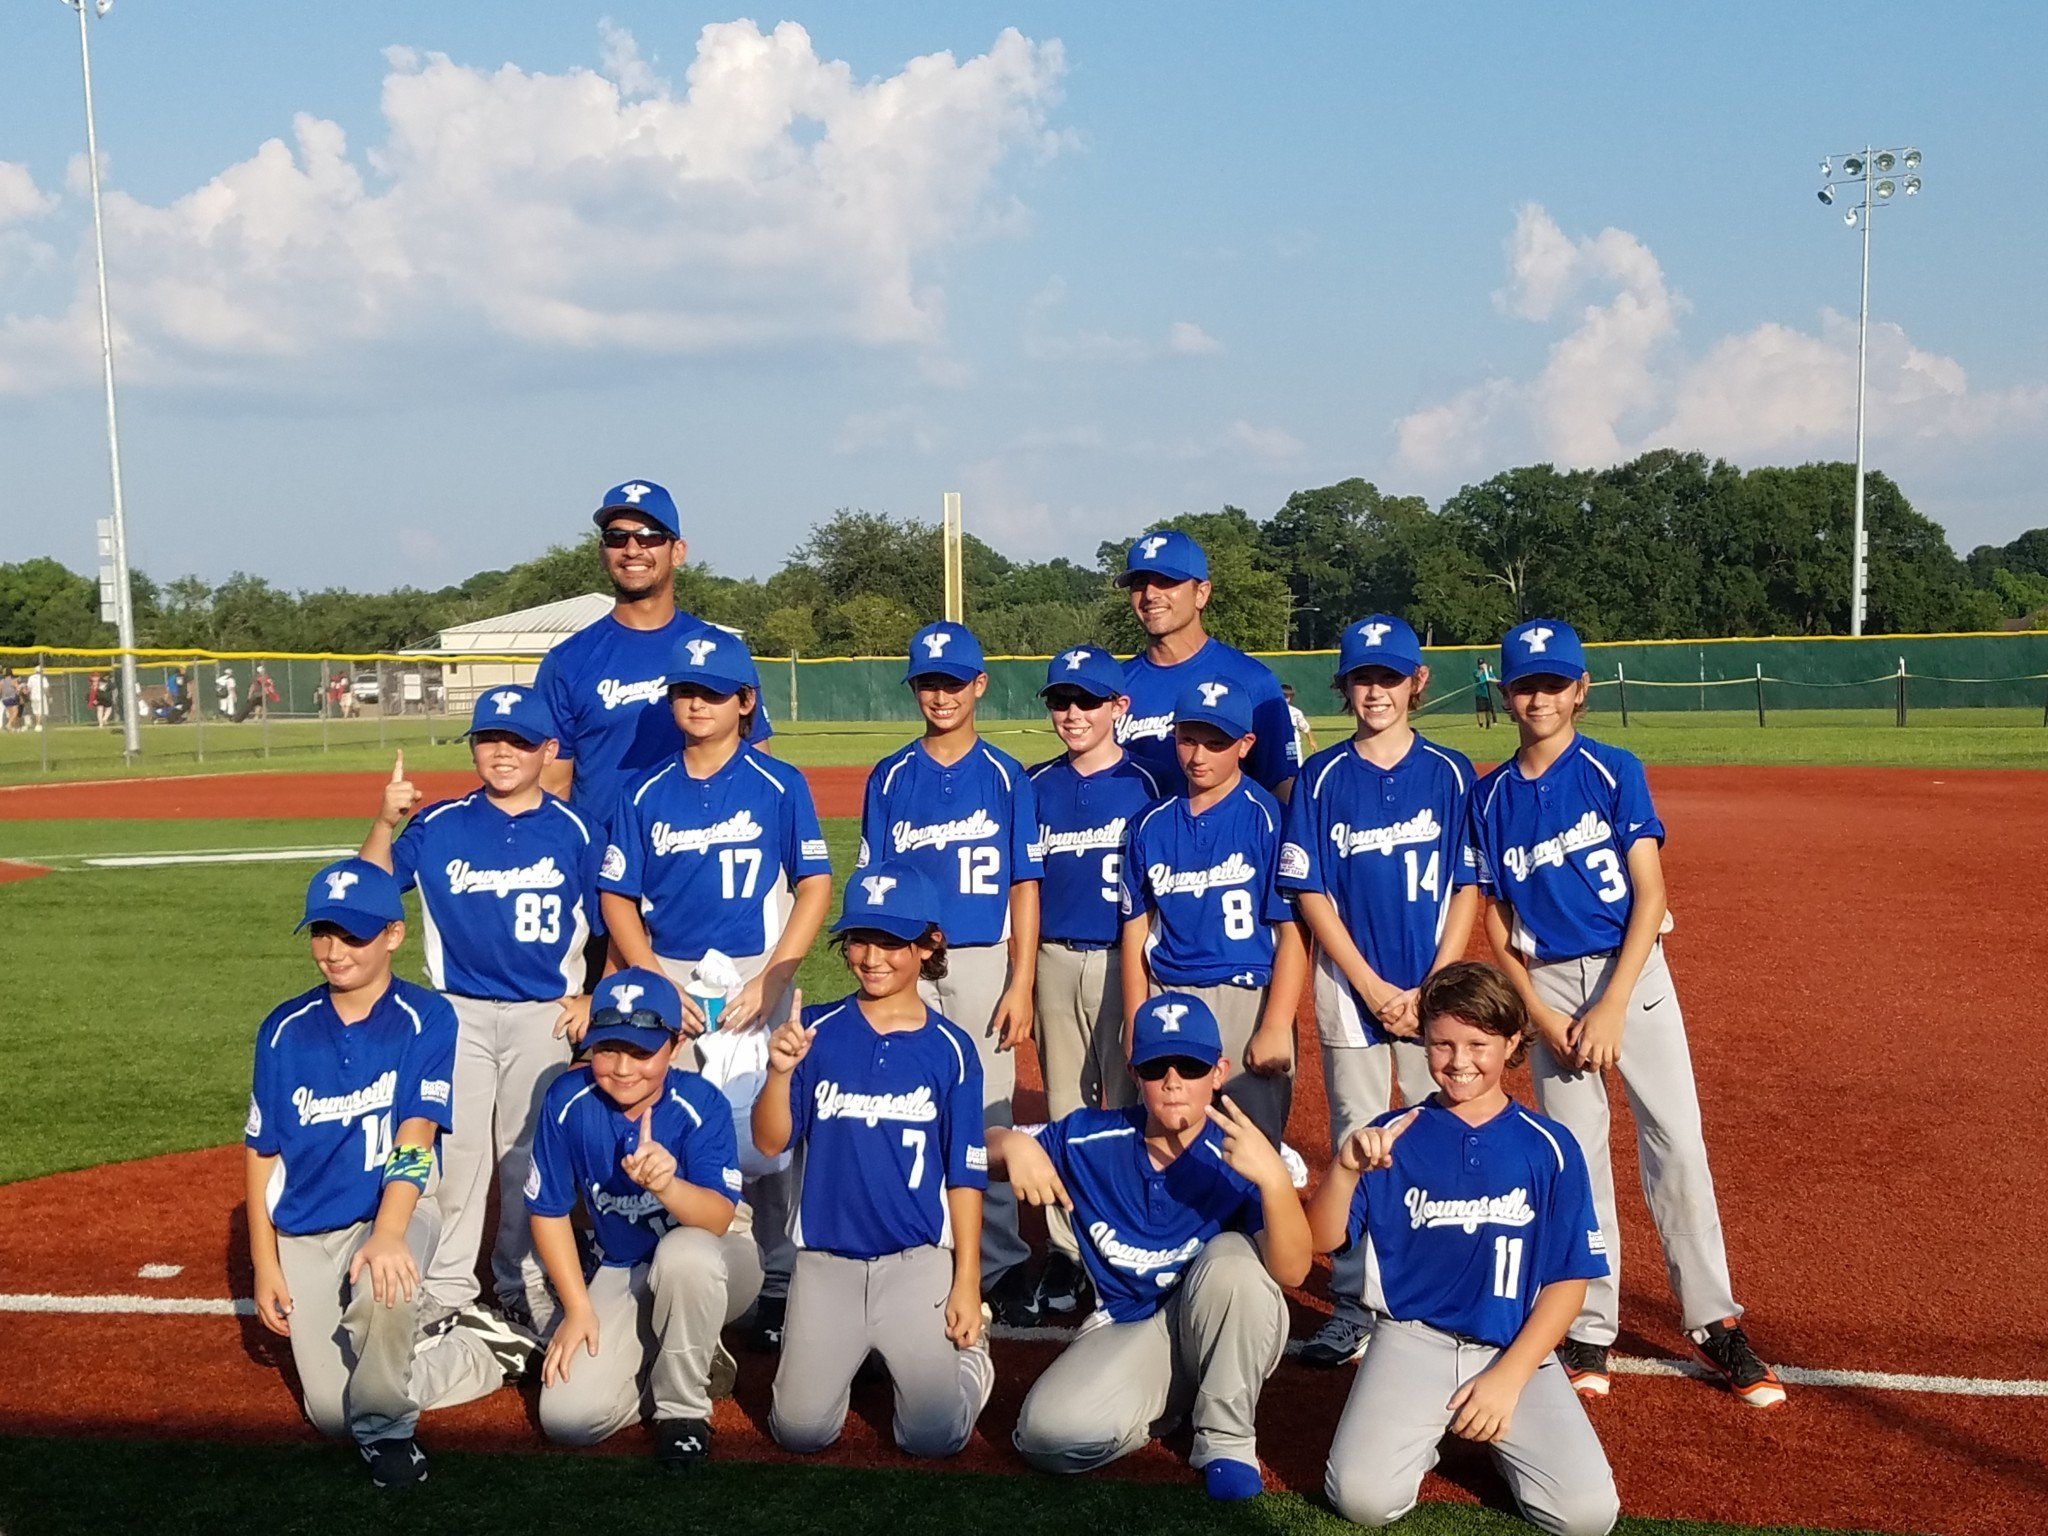 Youngsville Mustang 10 All Stars take 1st Place at Annual Crowley All Star Classic Tournament!